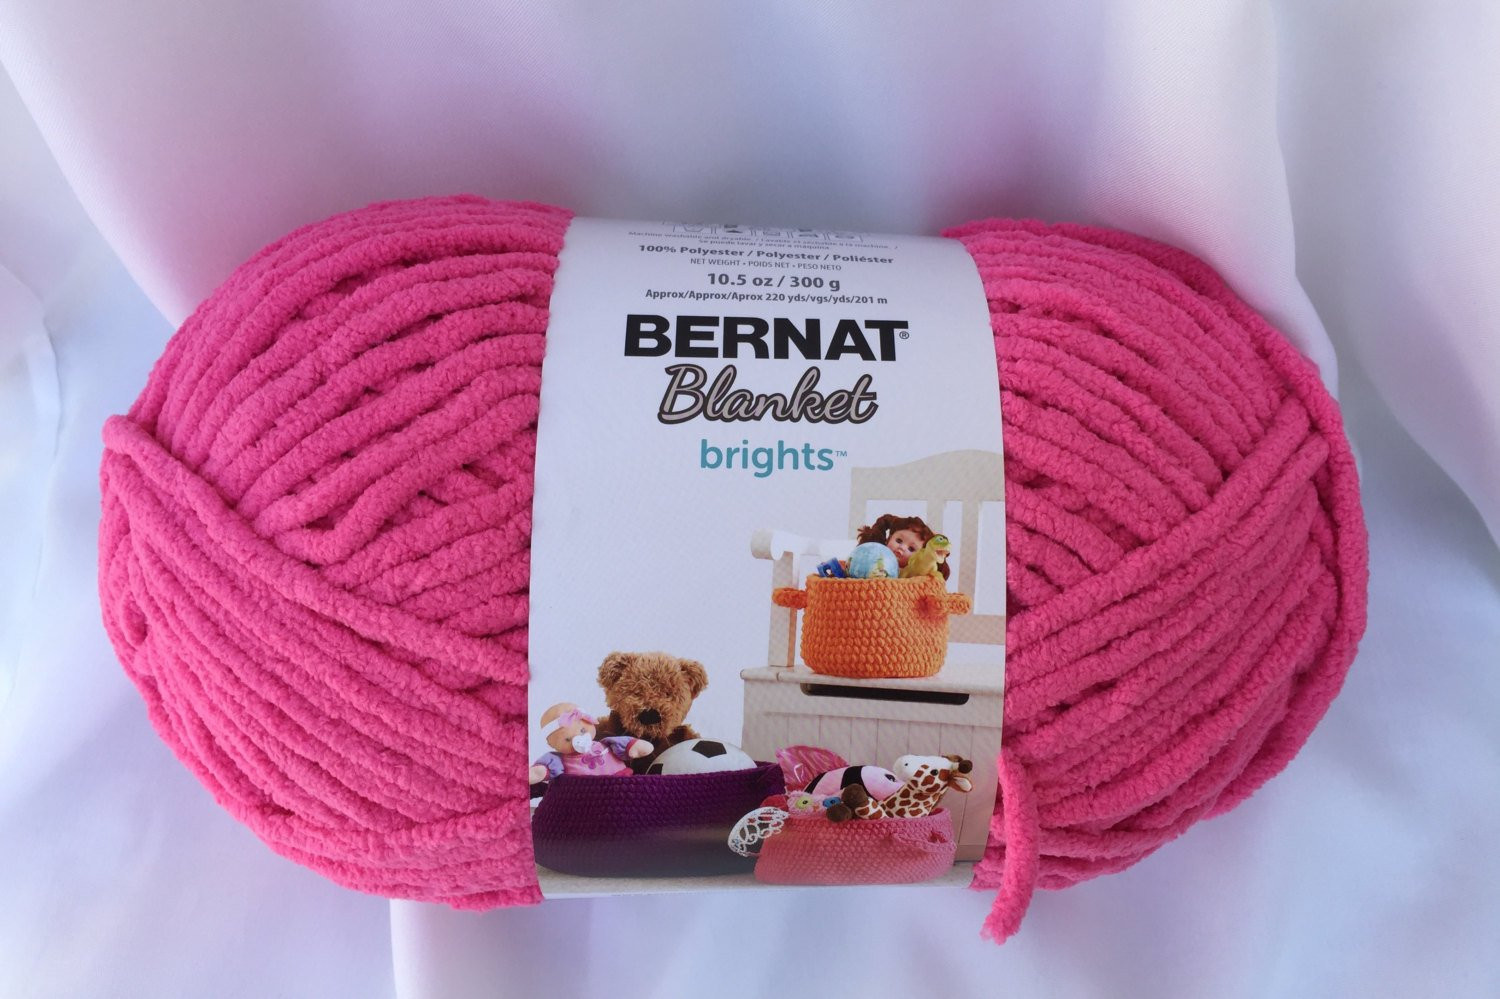 Bernat Blanket Brights Unique Bernat Blanket Brights Pixie Pink Yarn Big 10 5 Oz Of Amazing 42 Pictures Bernat Blanket Brights